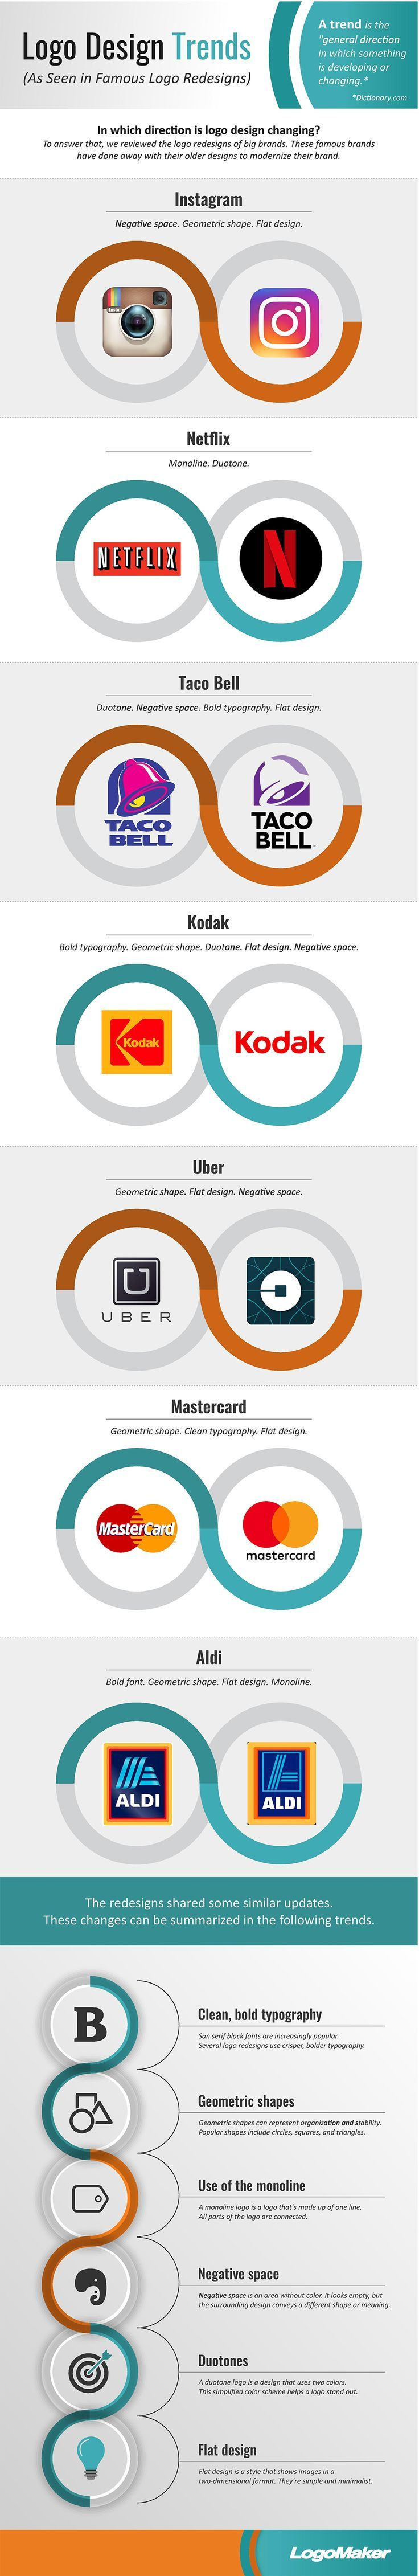 6 Modern LogoDesign Trends As Seen In Famous Logo Redesigns Infographic Design